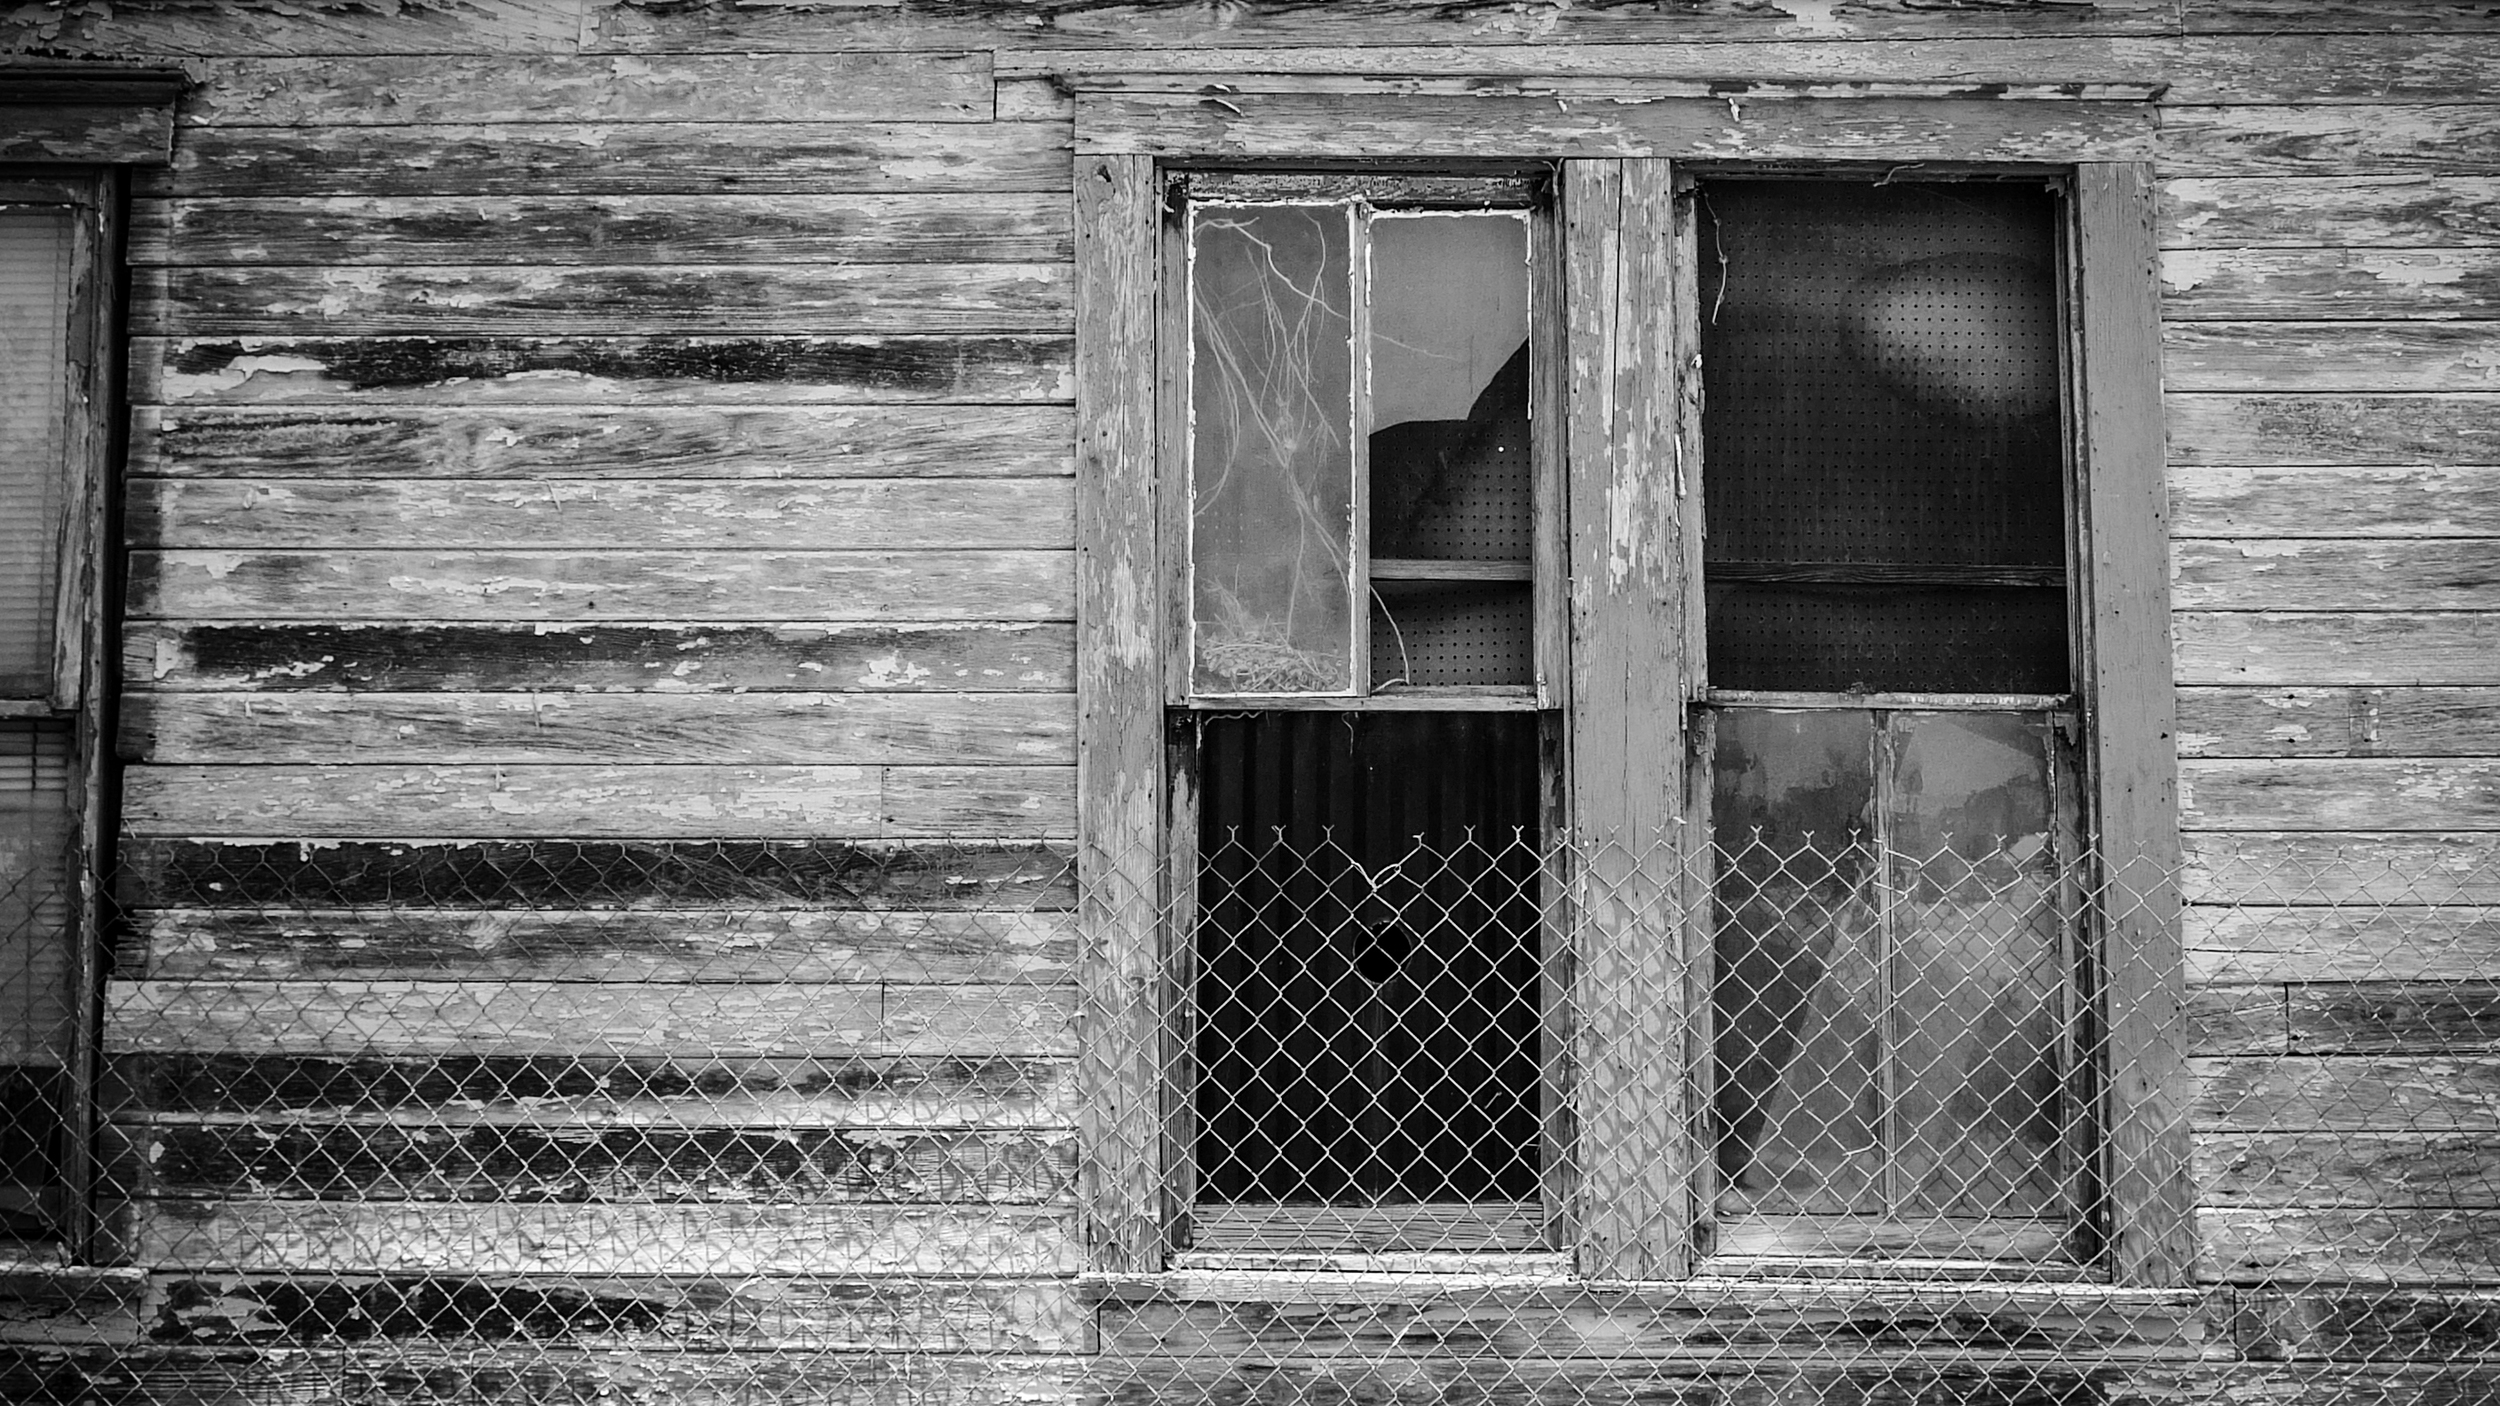 Bartlett-House-Window-6176.jpg